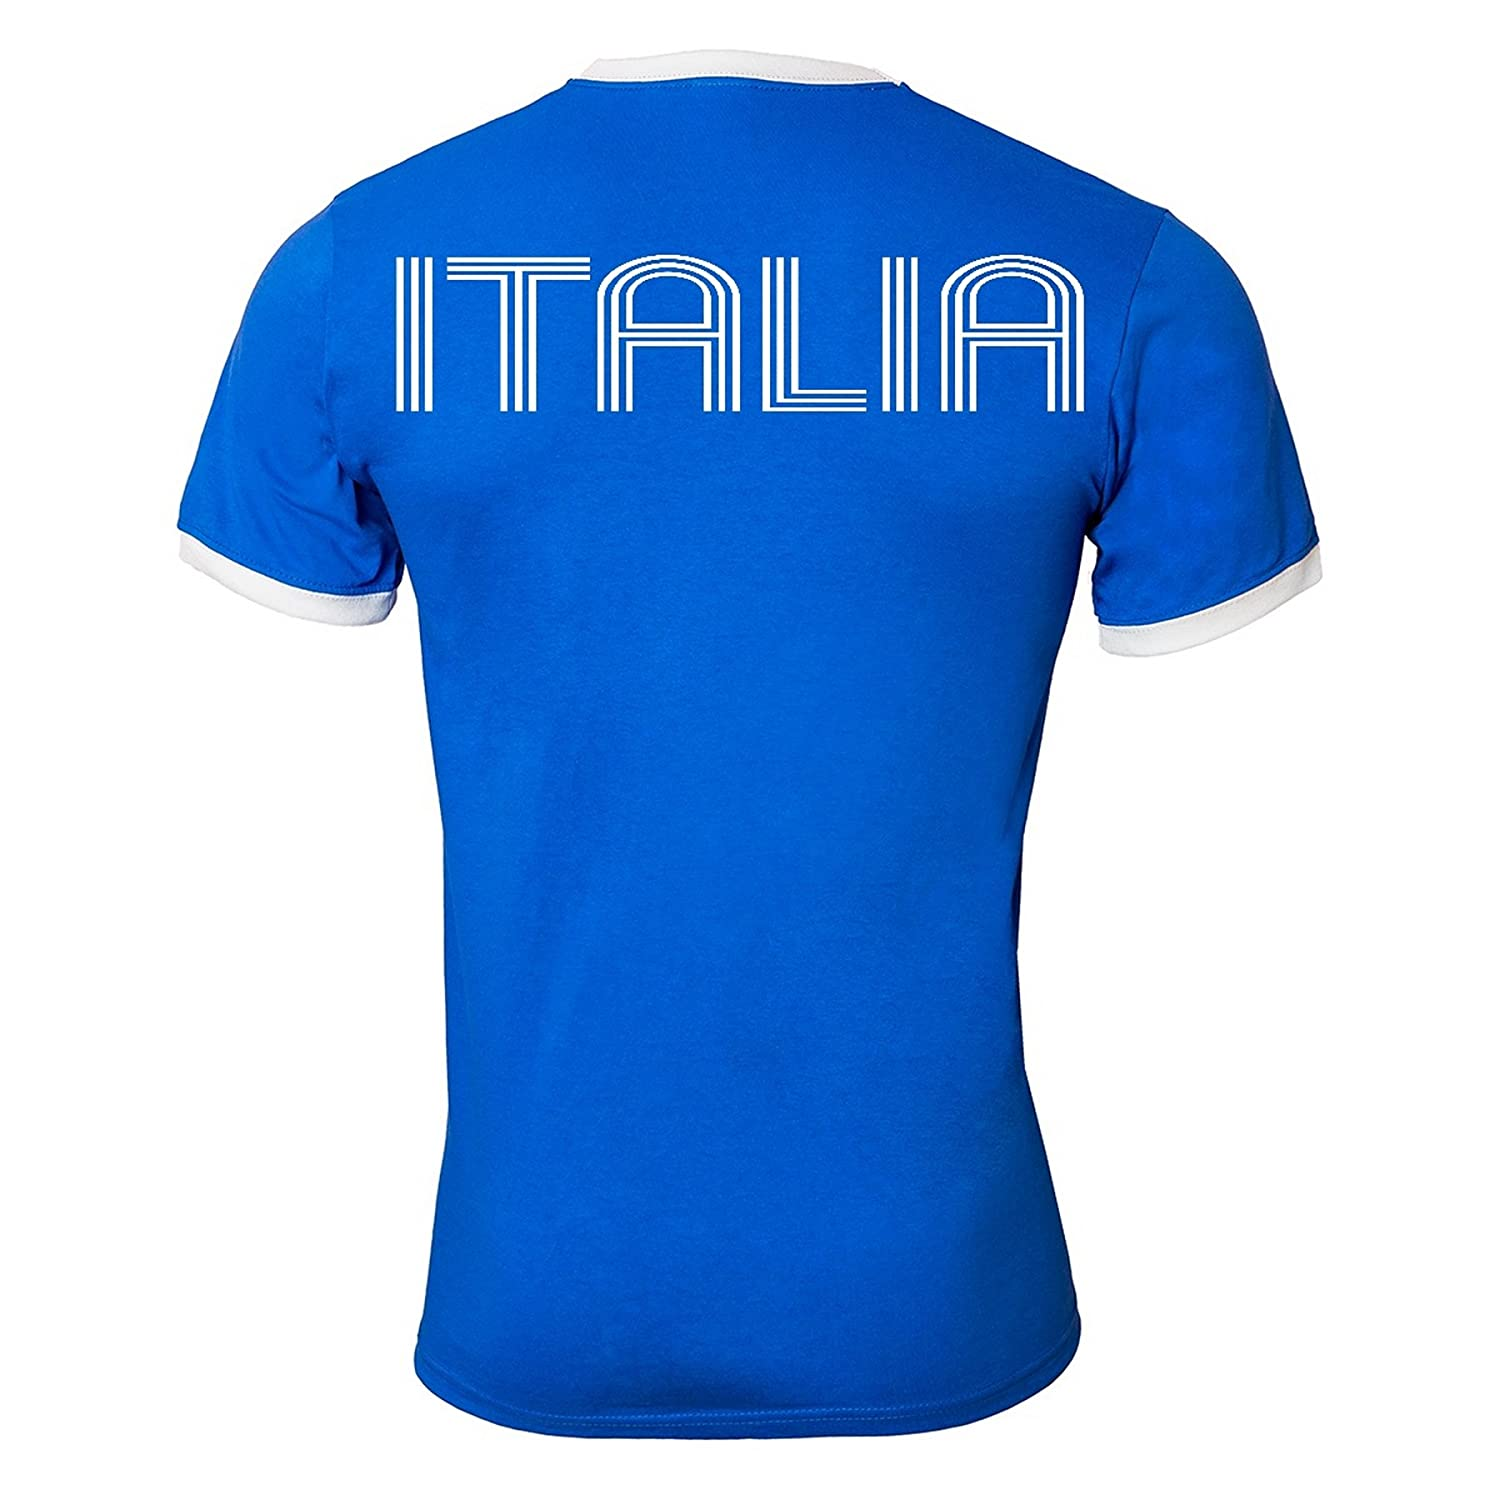 Rule Out Camiseta Ropa para fans Italiano Fútbol Equipo italia. Campeones Fútbol supporter. sportswear. casuall - Azul, XX-Large: Amazon.es: Ropa y ...